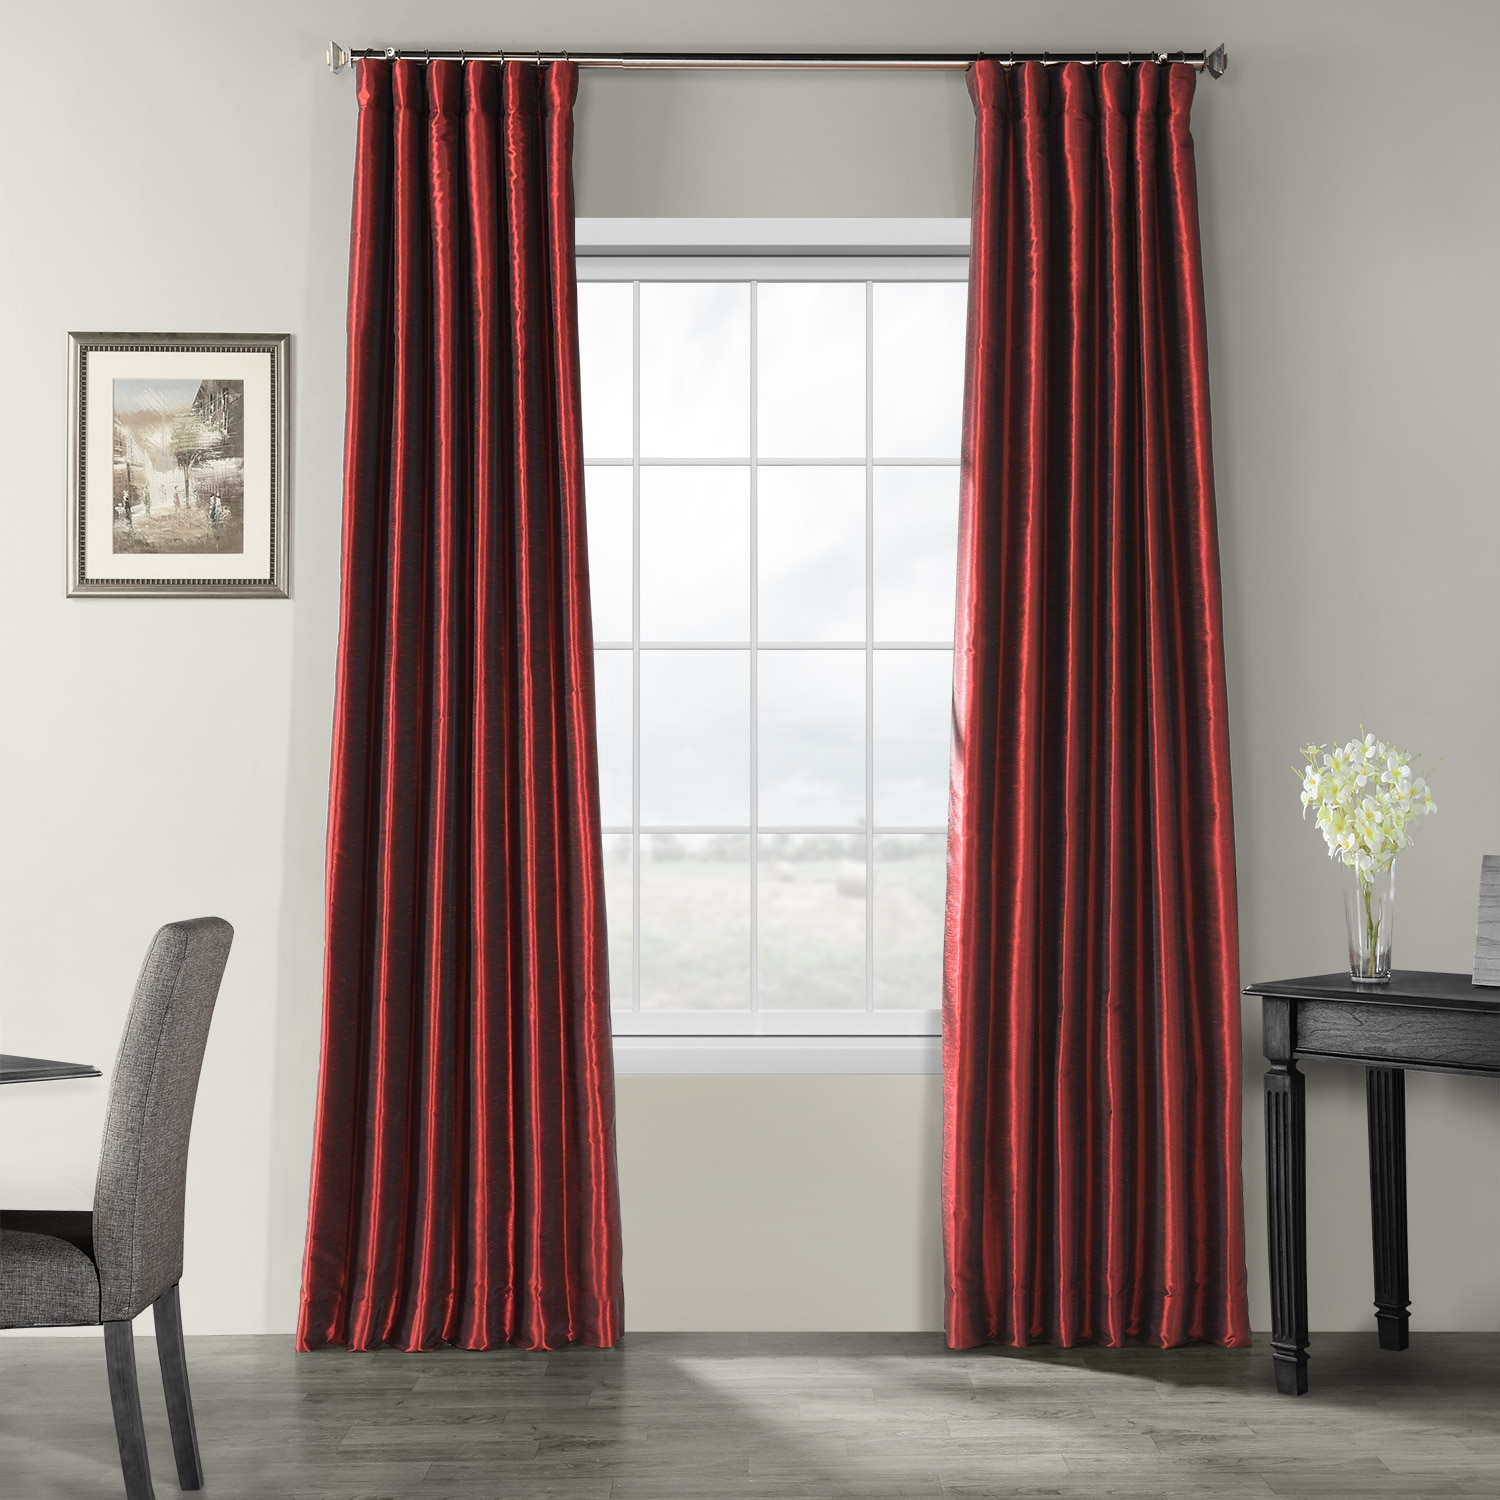 Faux Silk Curtains Ruby Vintage Textured Faux Dupioni Silk Curtain